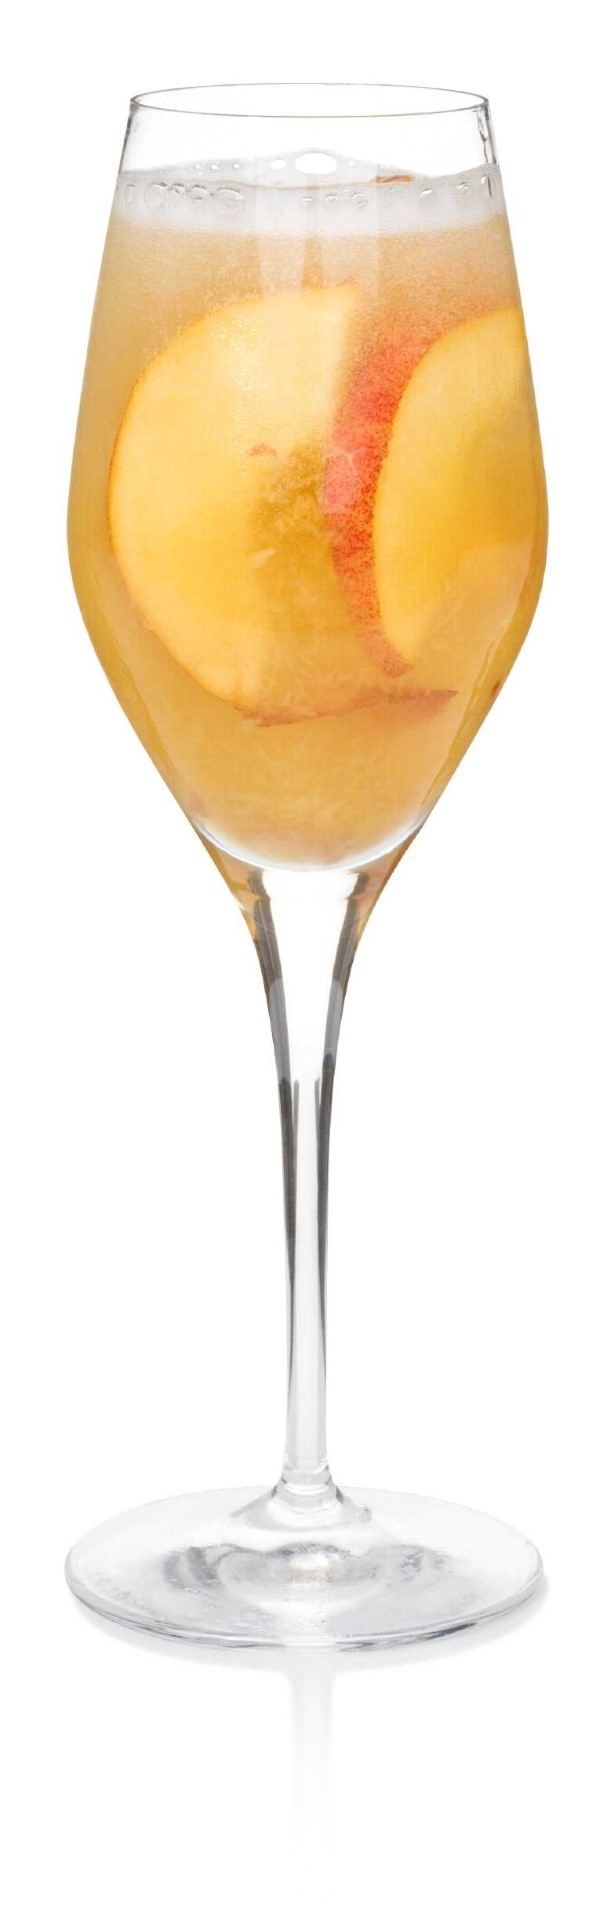 Thermomix champagne cocktails dresses